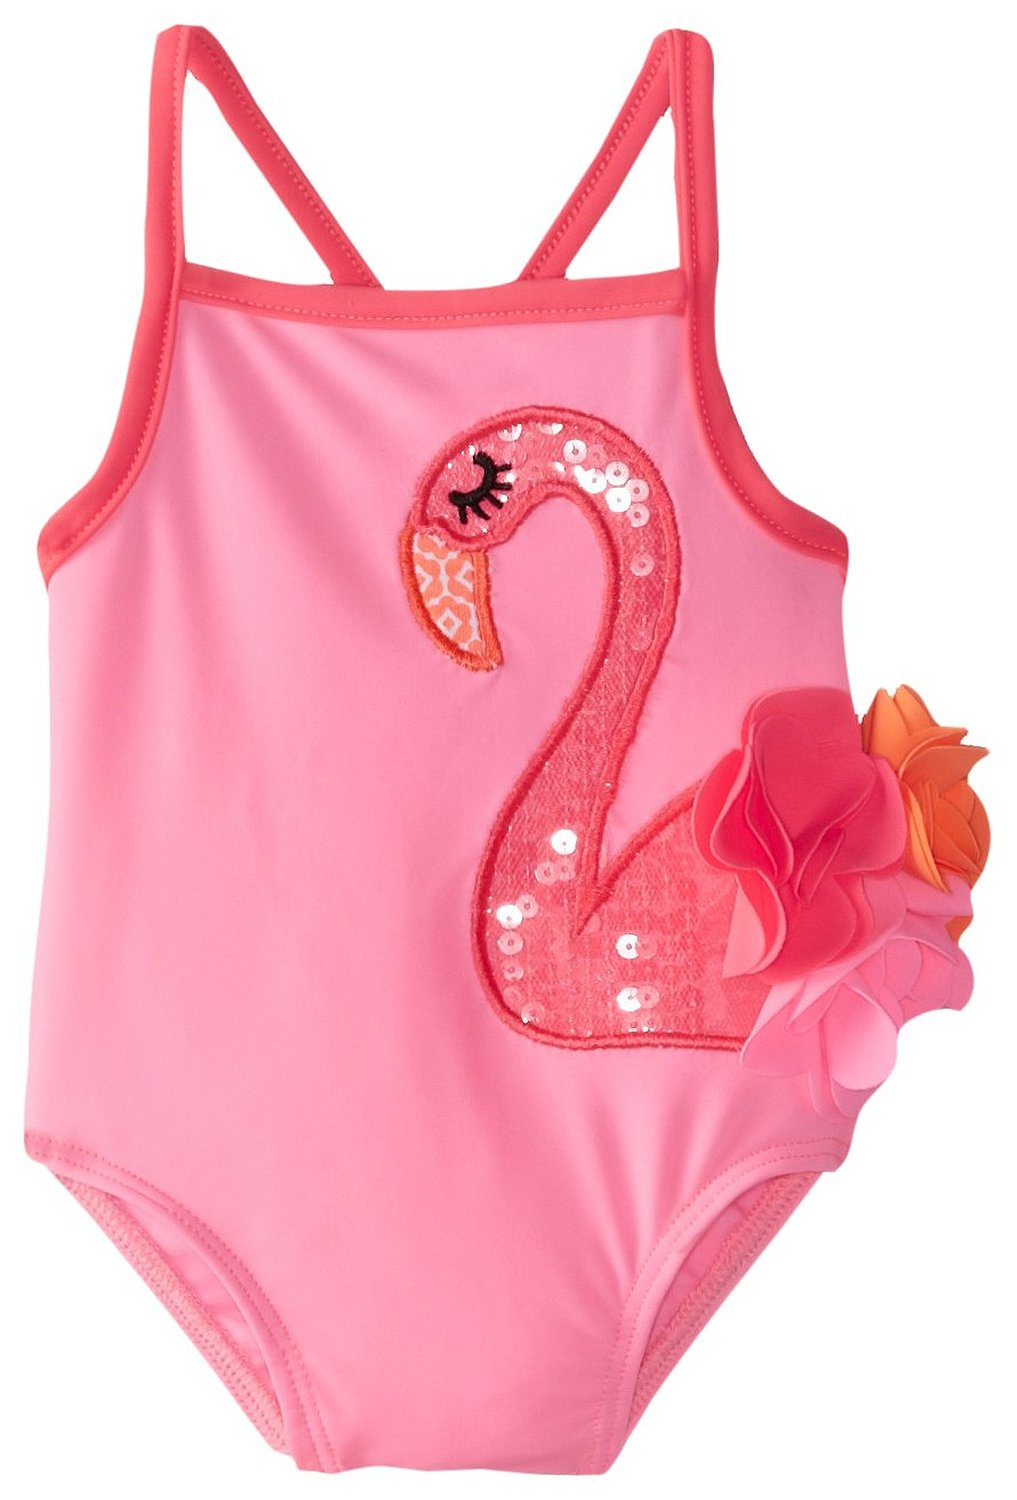 Shop must-have infant bathing suits for your little girl or boy in the season's cutest styles. From rashguards and swim trunks to swimsuits and tankinis, stock up on sweet swim gear for your tiny tot.